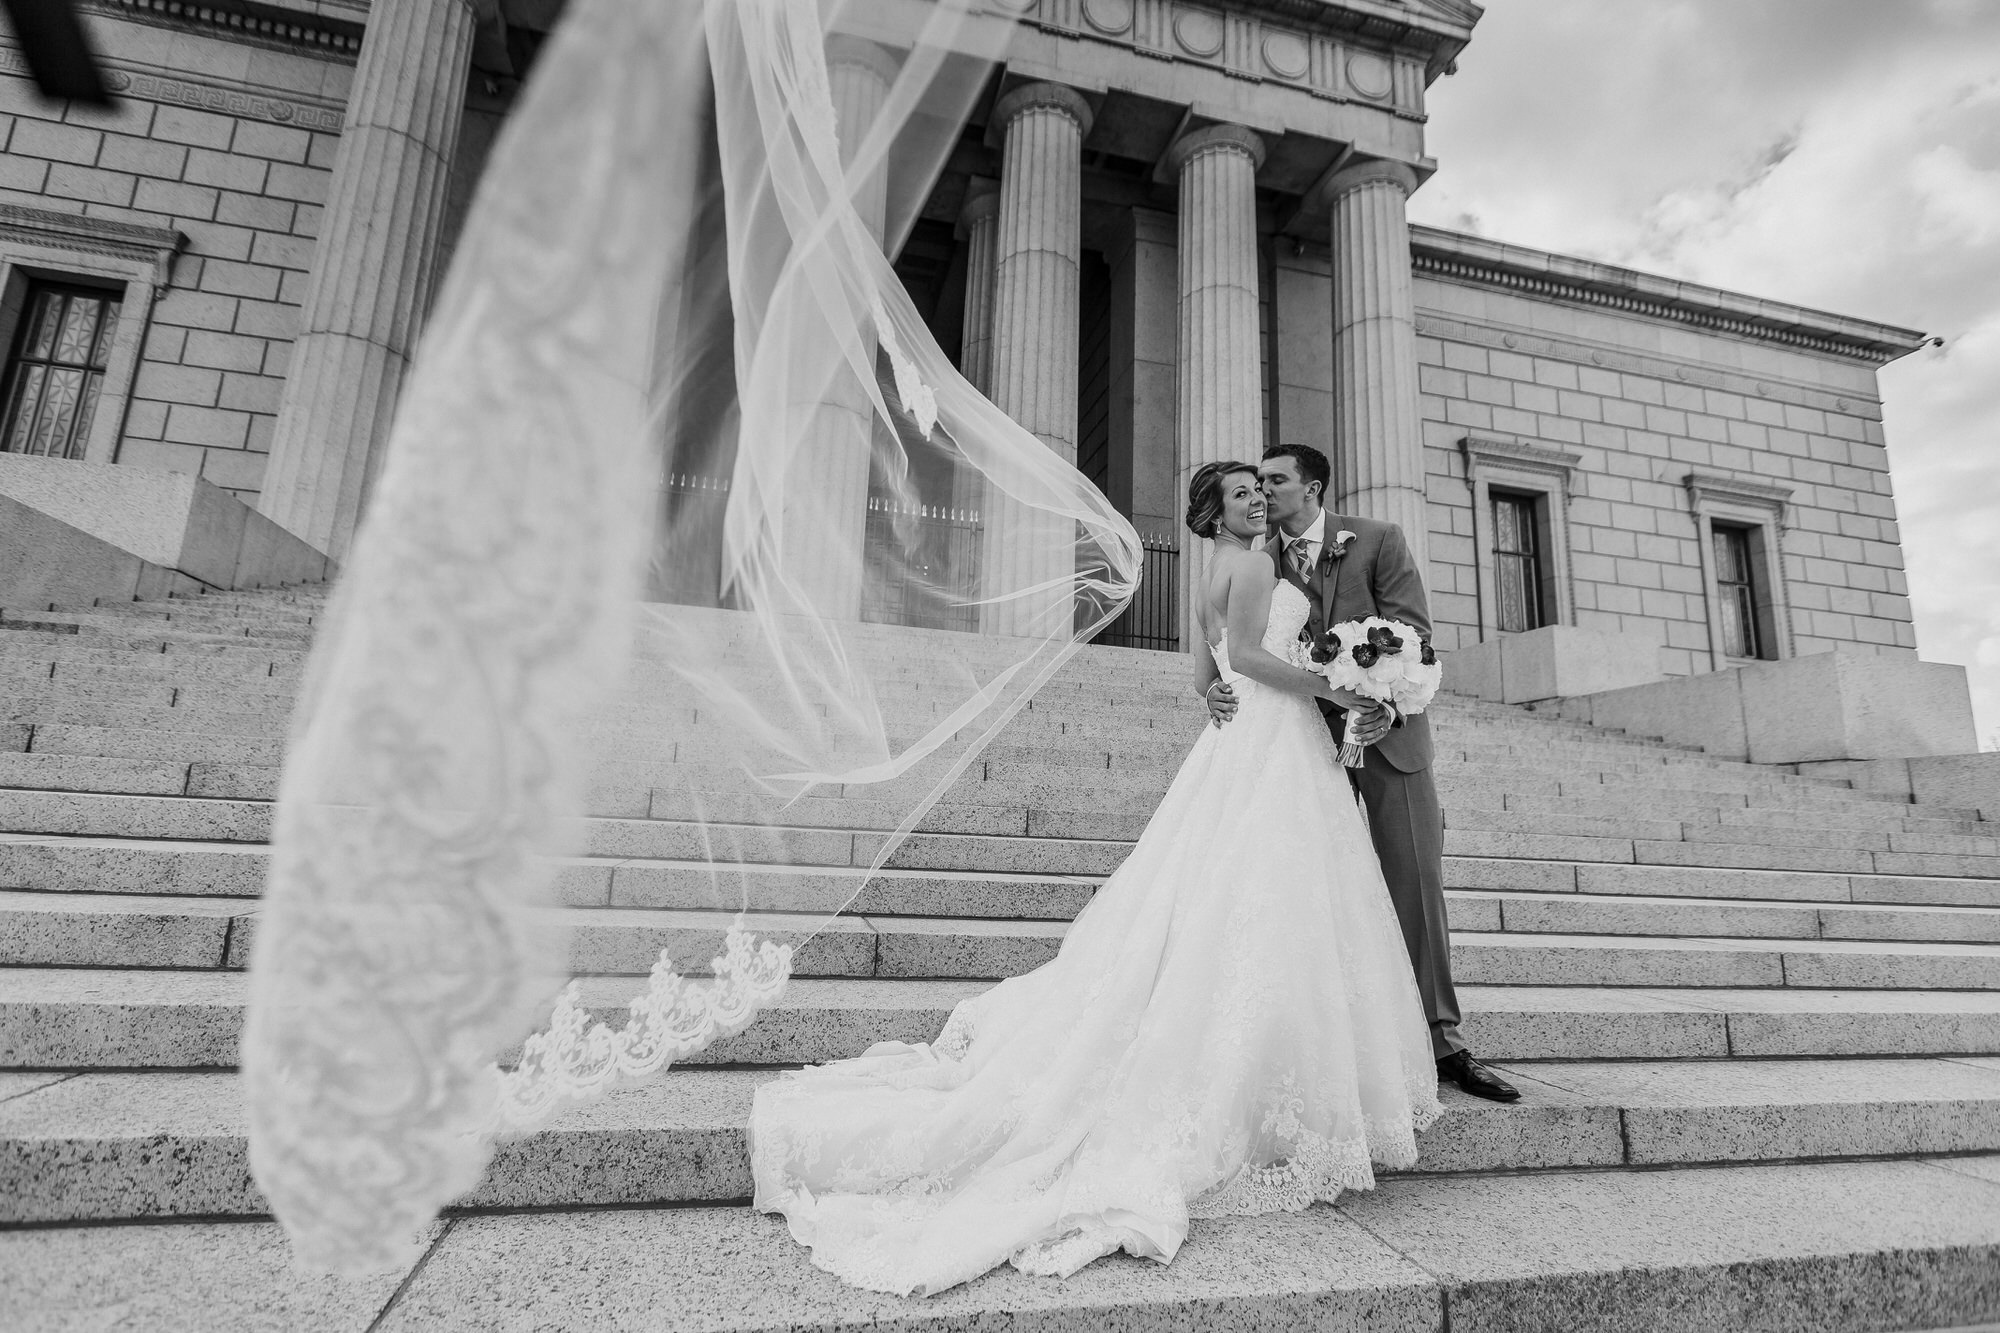 Veil flying away during bridal portraits - photo by Ken Pak Photography